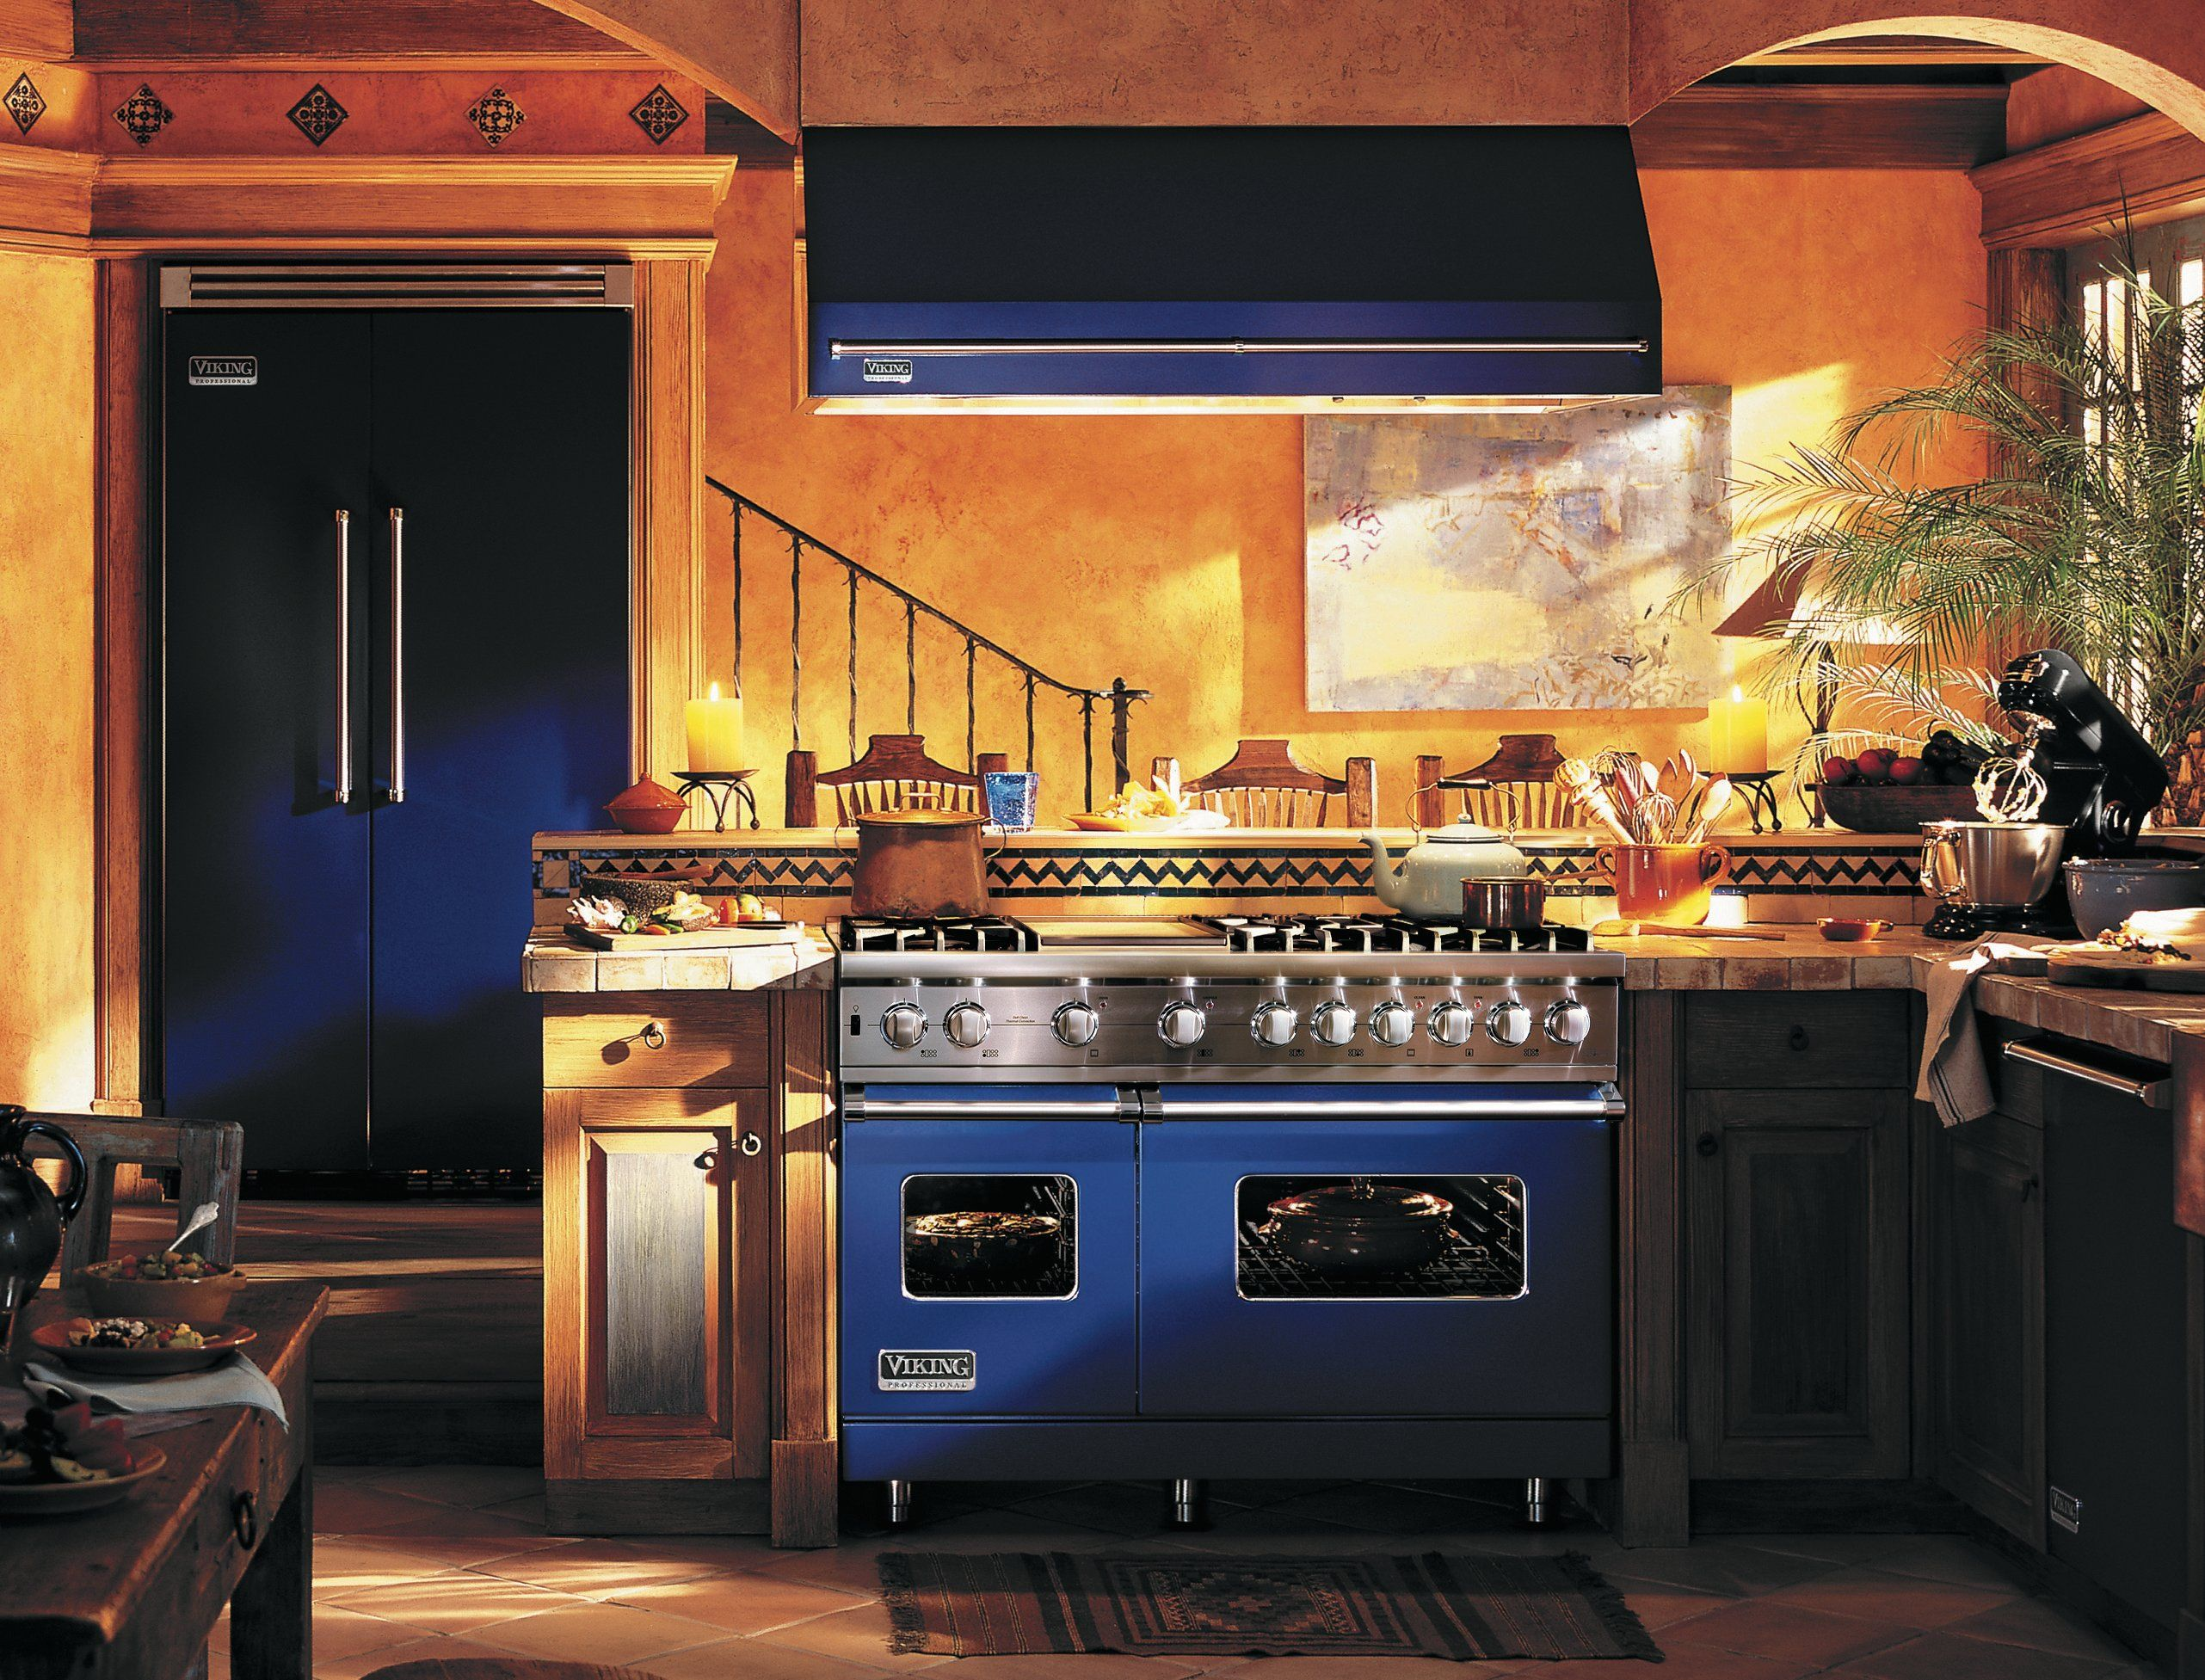 Viking Lets You Personalize Your Kitchen With Color Viking Kitchen Blue Kitchen Appliances Viking Appliances